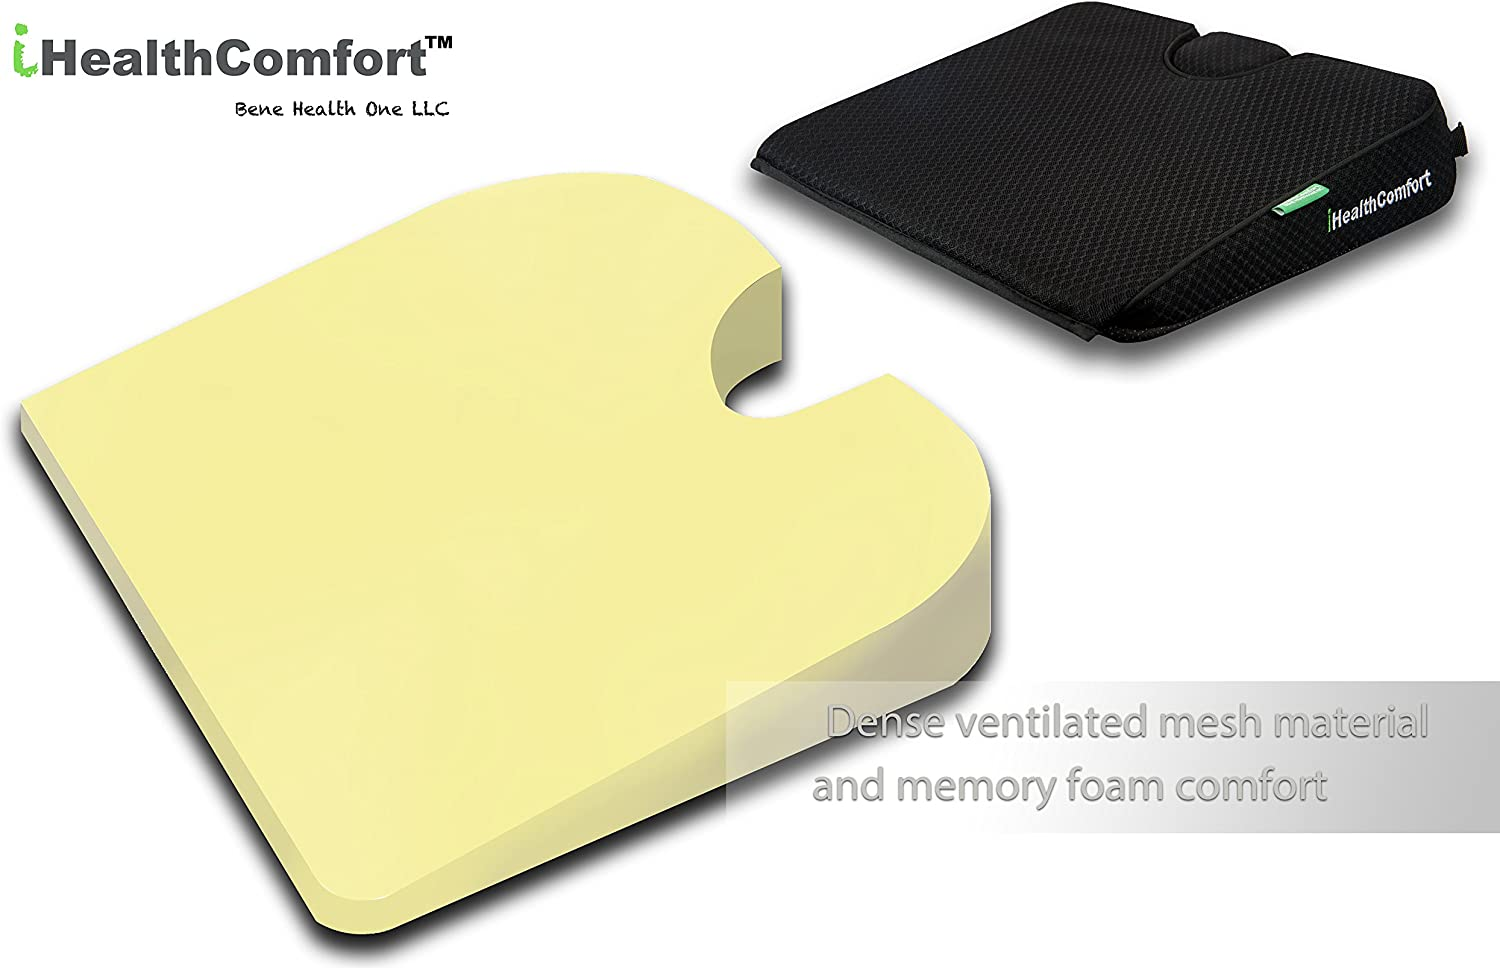 iHealthComfort Portable Wedge Seat Cushion Orthopedic Memory Foam Wellness Cushion